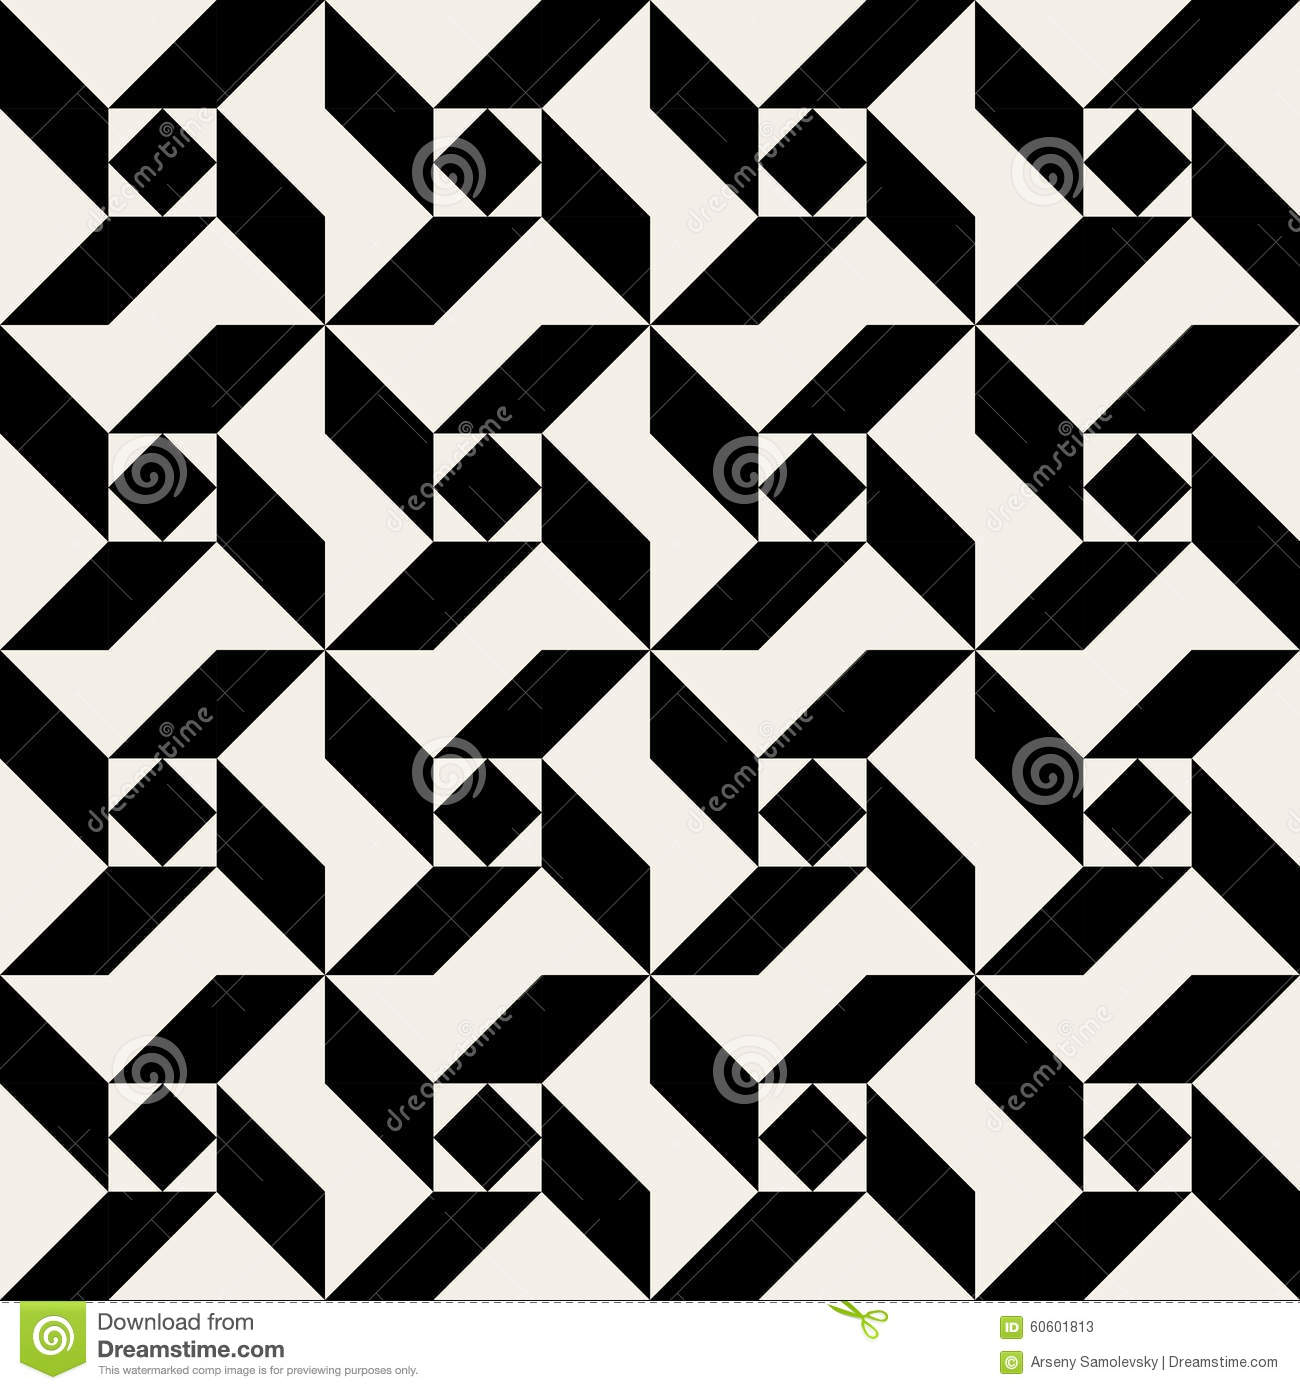 Vector Seamless Black And White Triangle Square Spiral Geometric